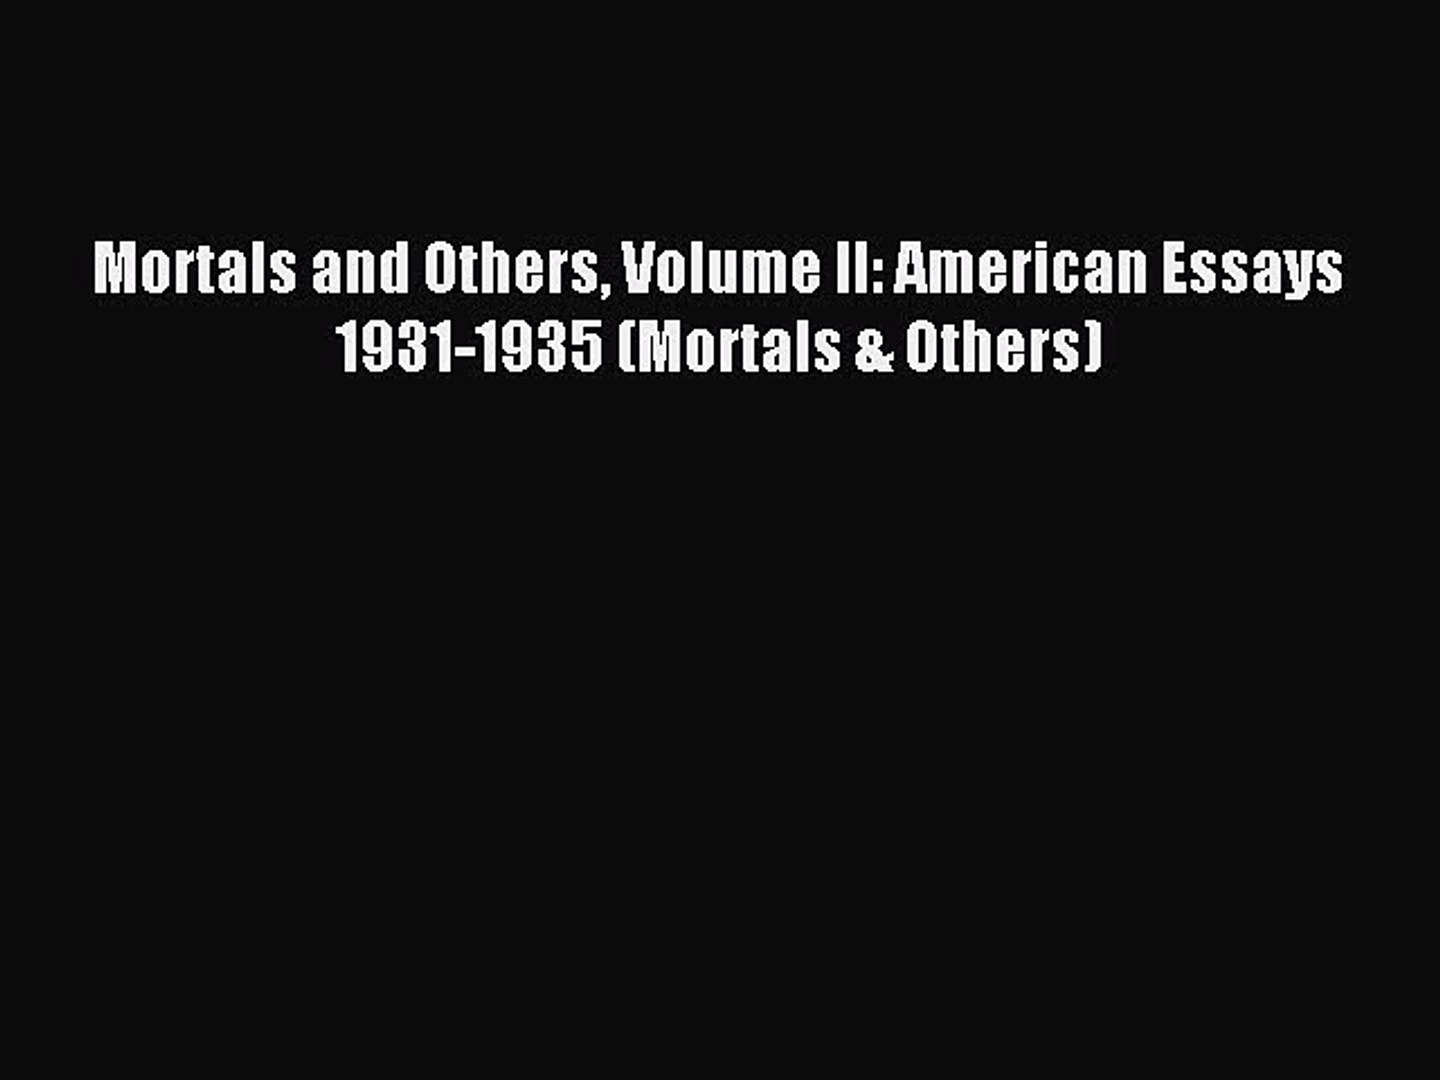 Read Mortals and Others Volume II: American Essays 1931-1935 (Mortals & Others) Ebook Free